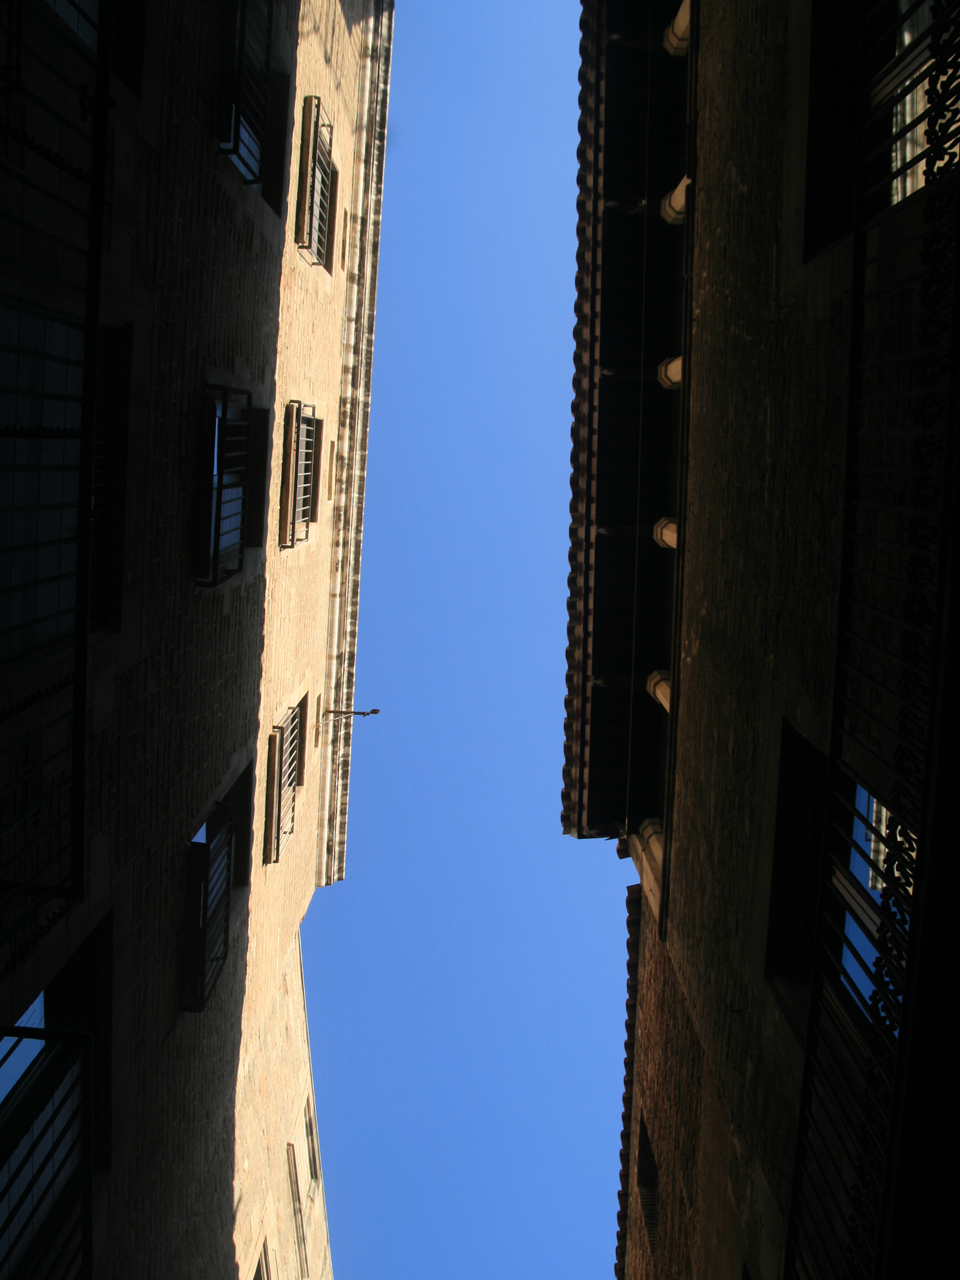 Montcada Street - the Skyline